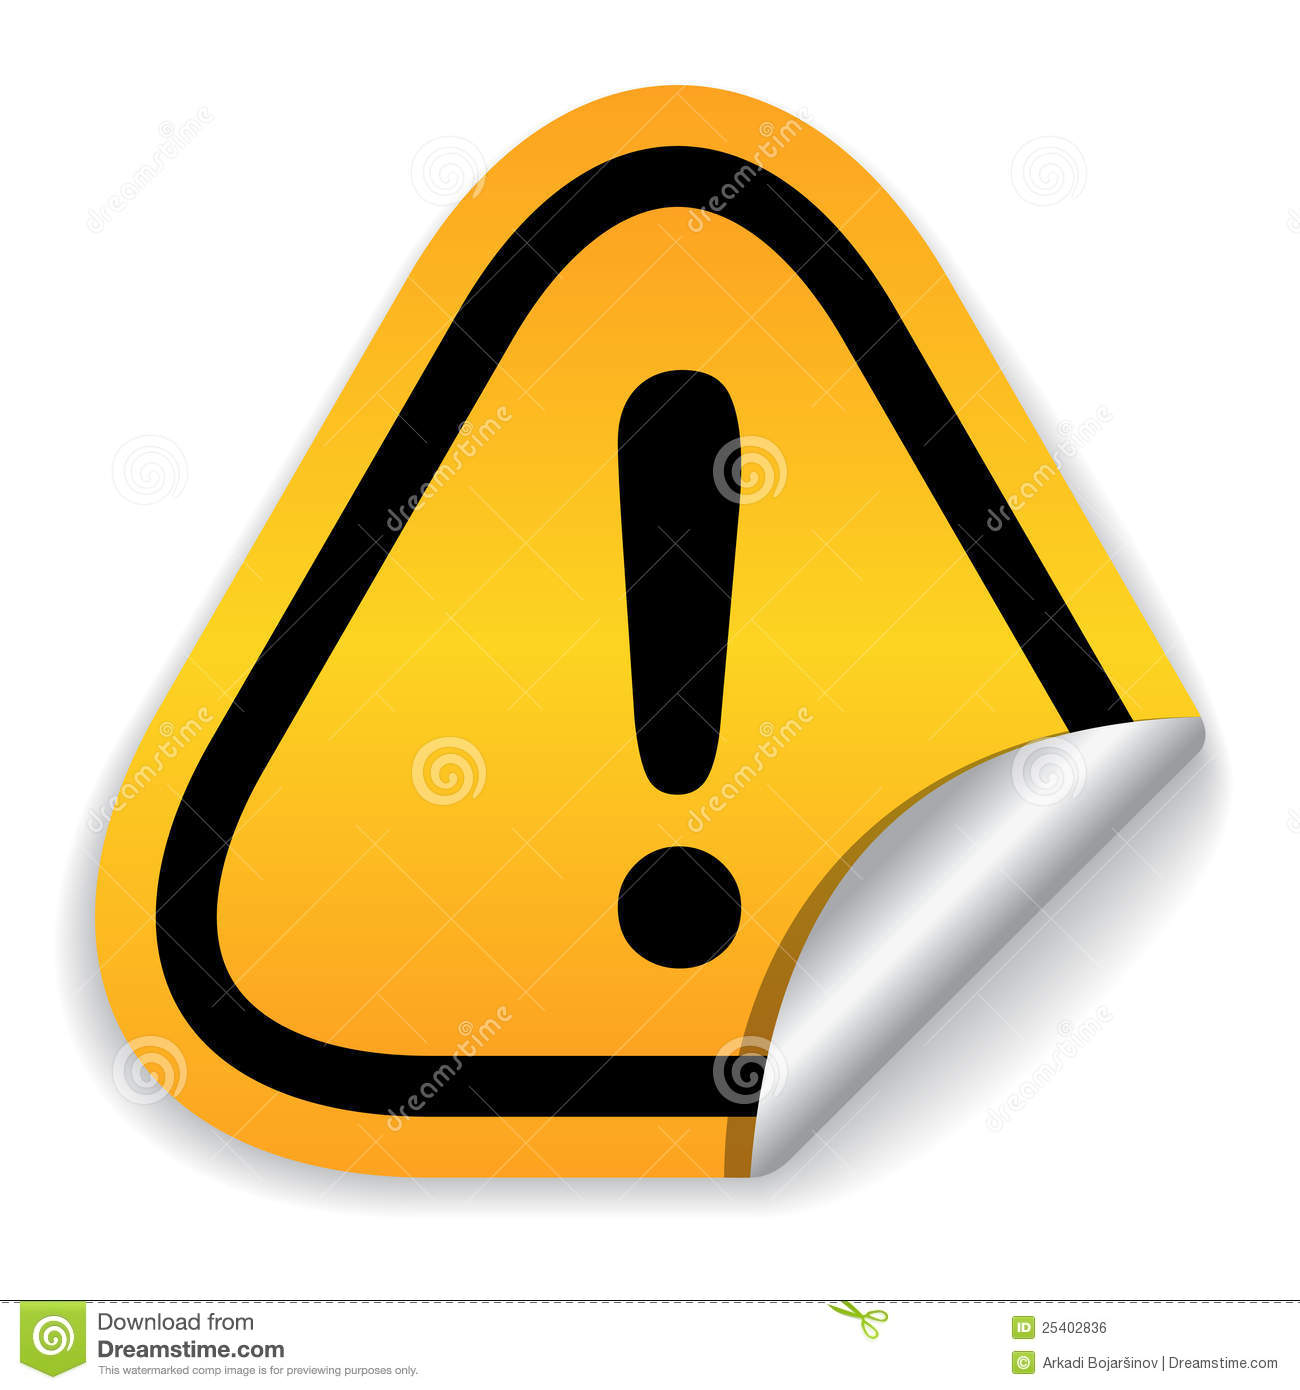 Attention Sign Royalty Free Stock Image - Image: 25402836